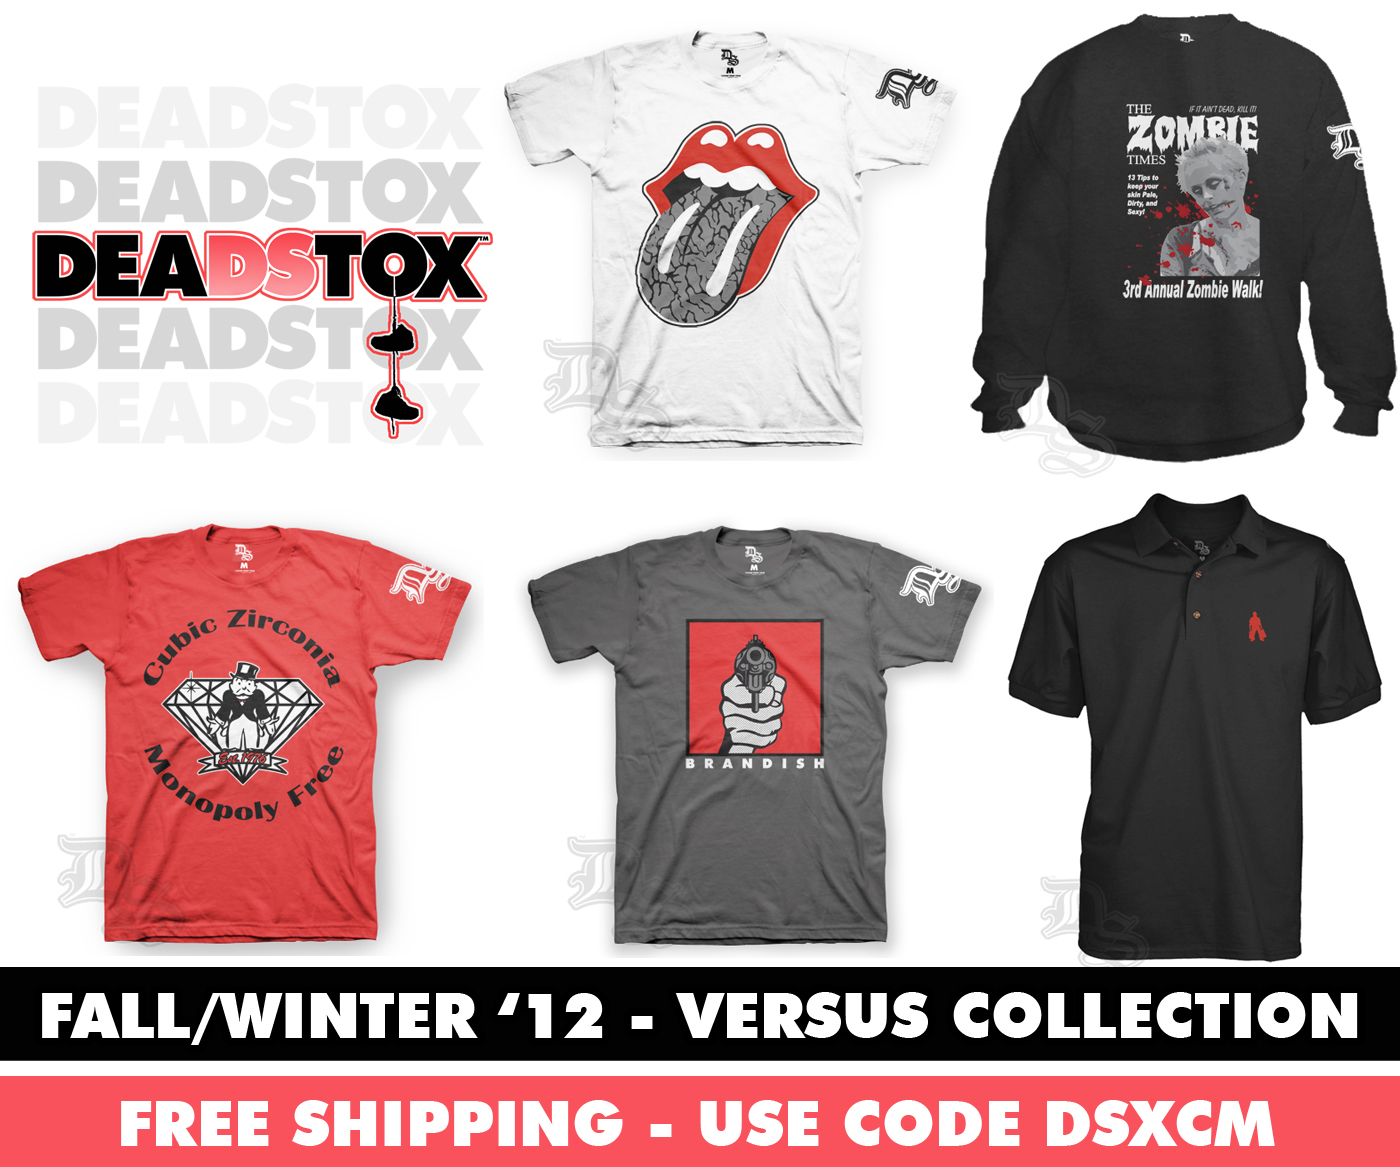 DeadStox Fall/Winter 2012 'Versus' Collection